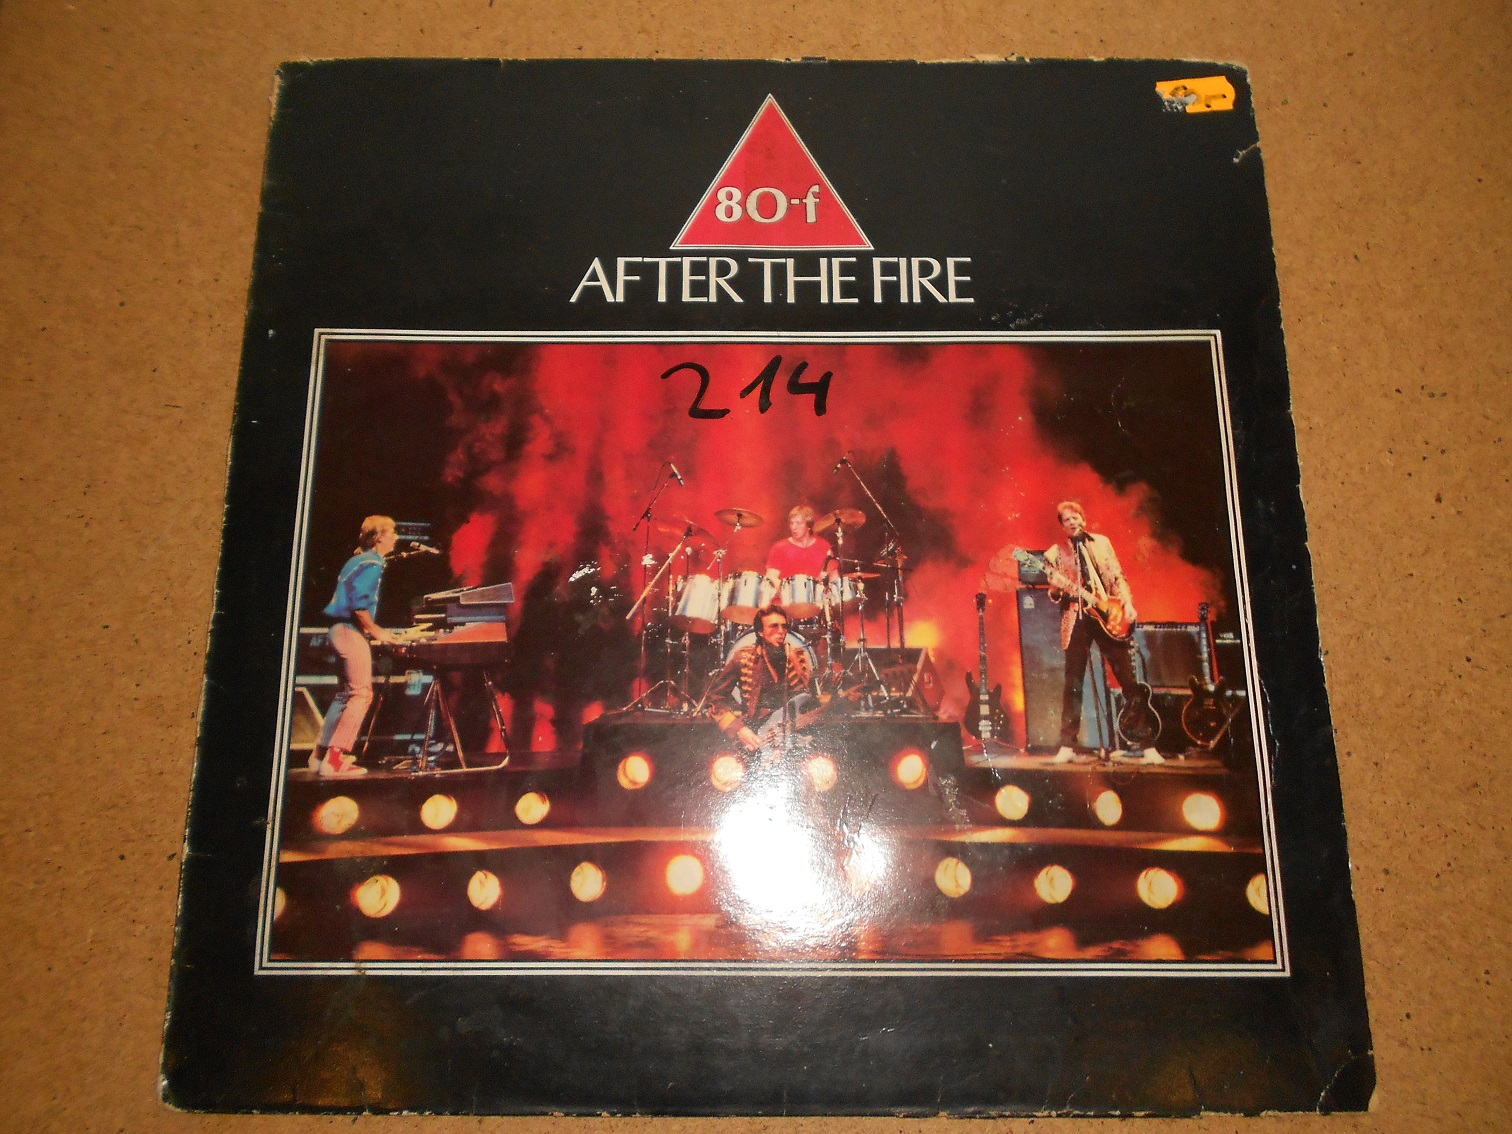 After The Fire ‎– 80-f